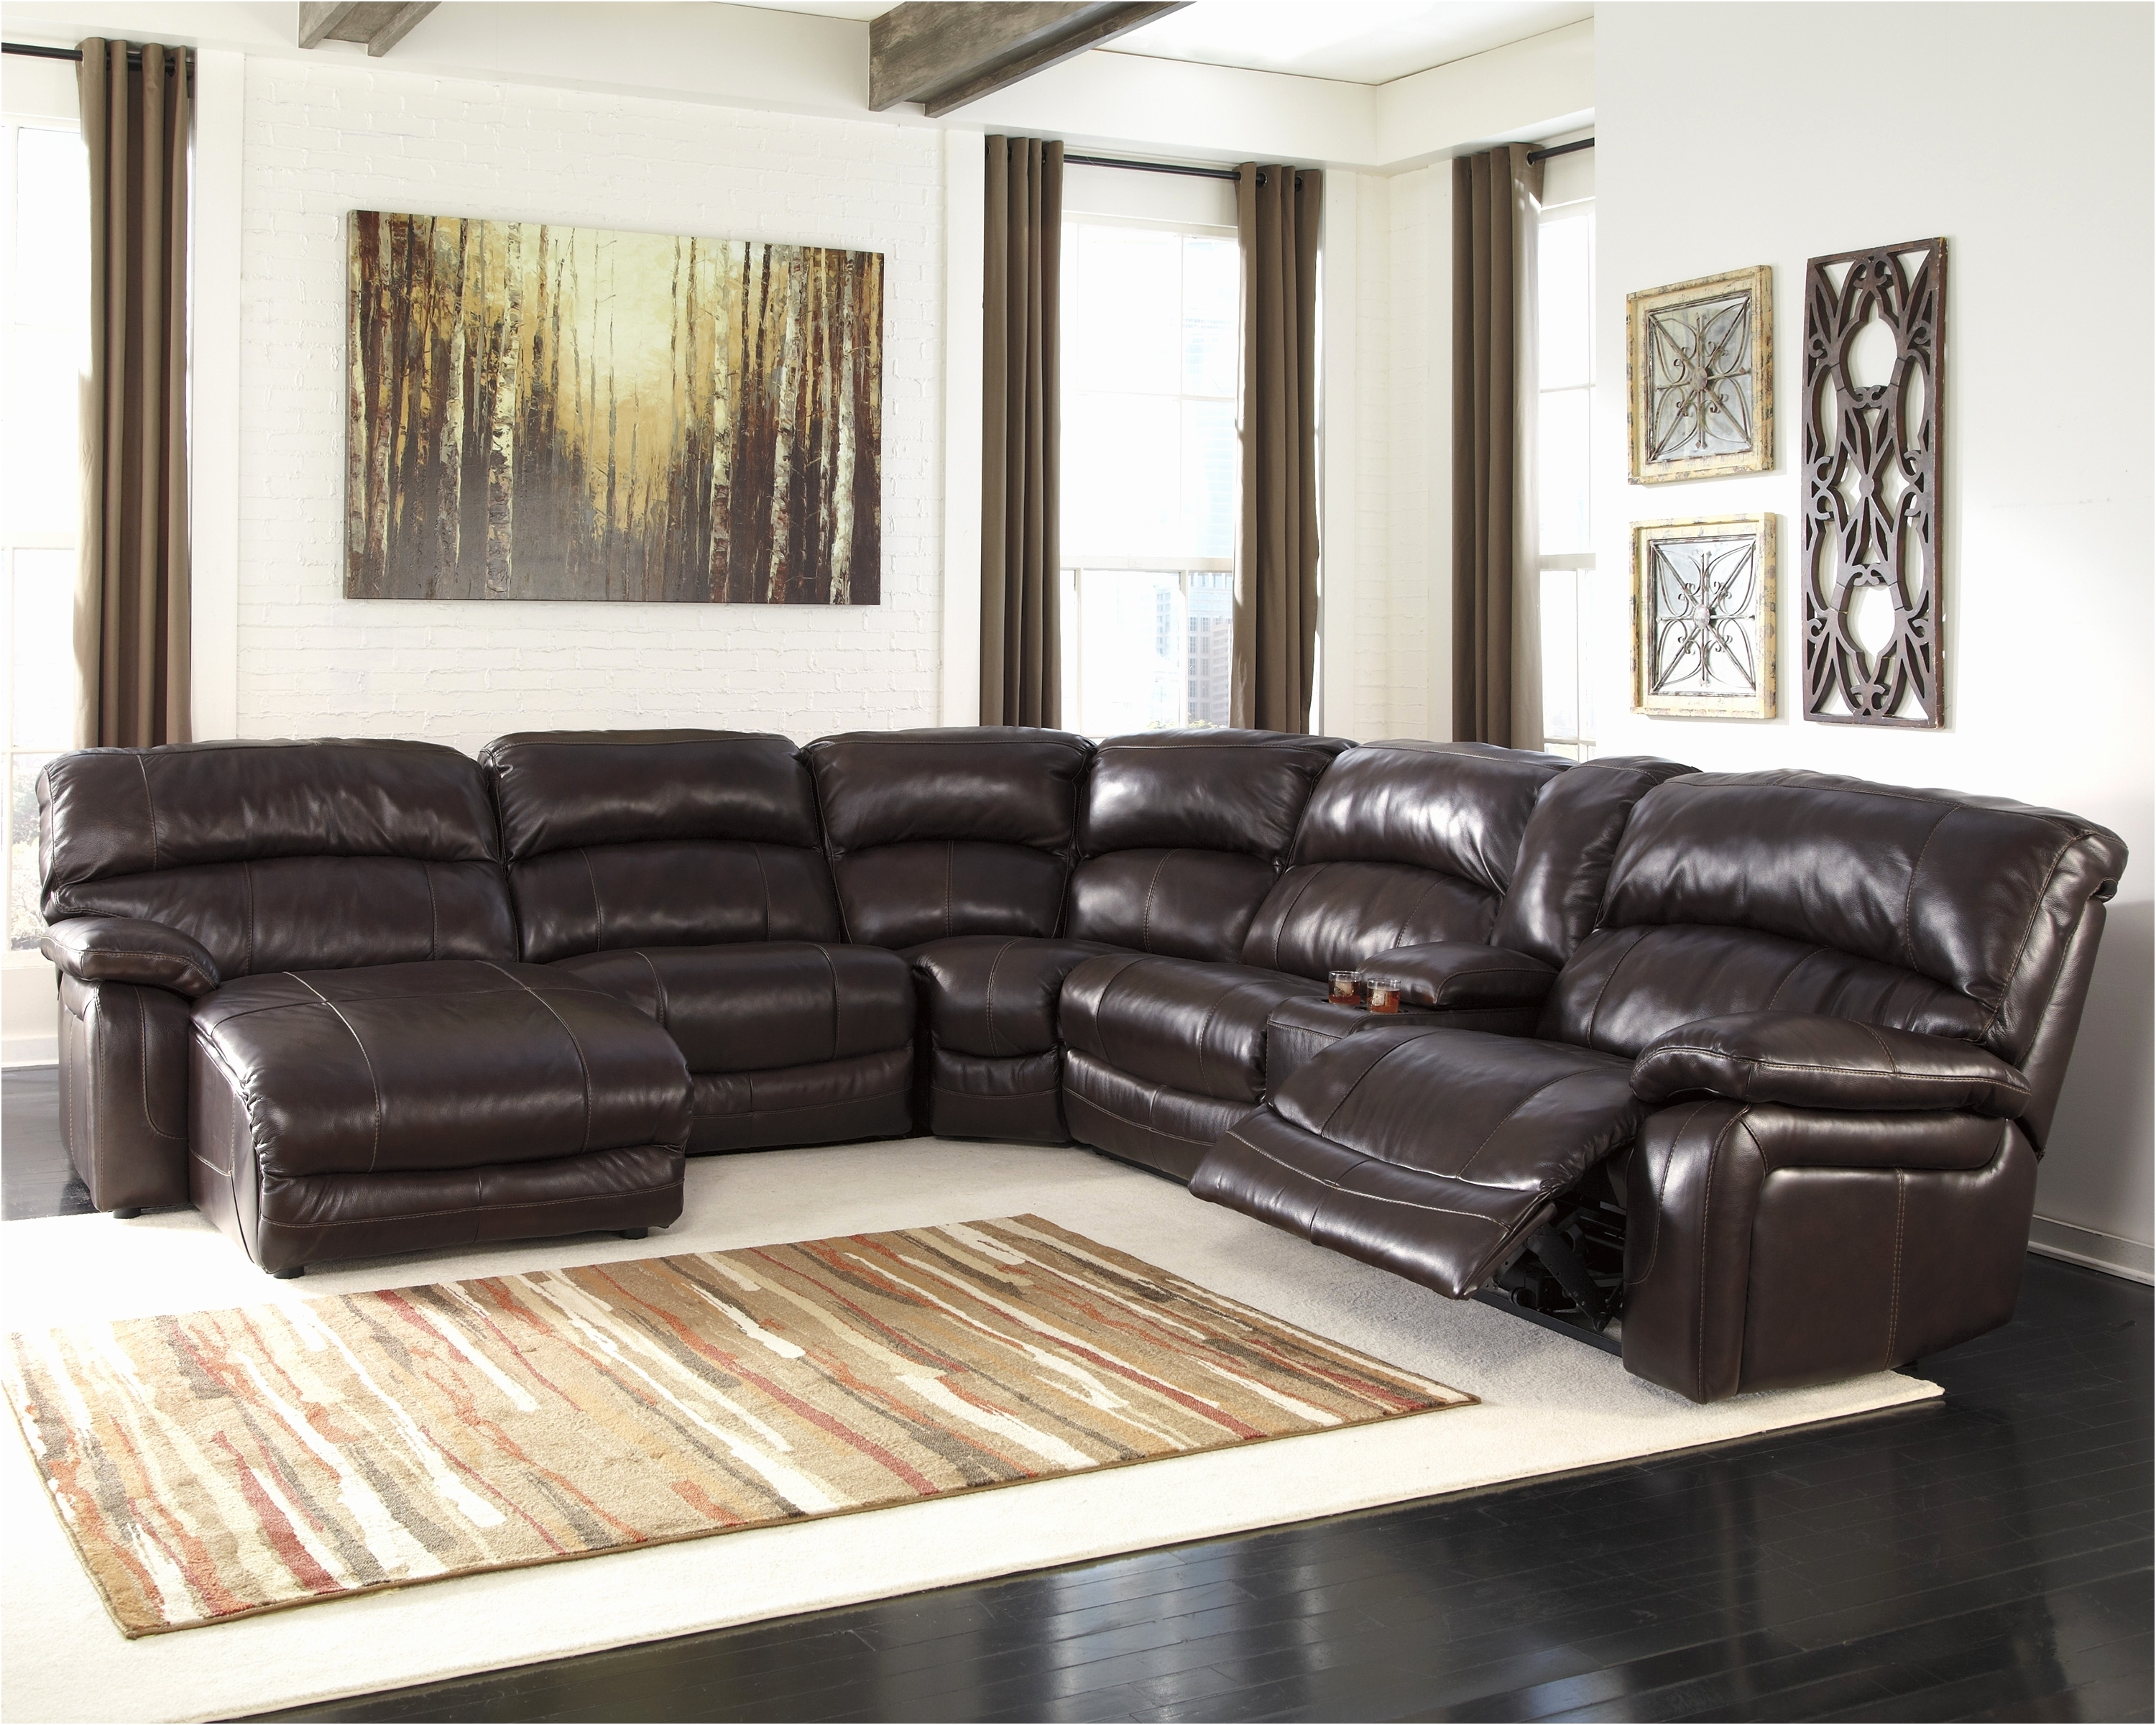 Well Known Kmart Sectional Sofas Inside Fresh Sears Leather Sofa New – Intuisiblog (View 16 of 20)